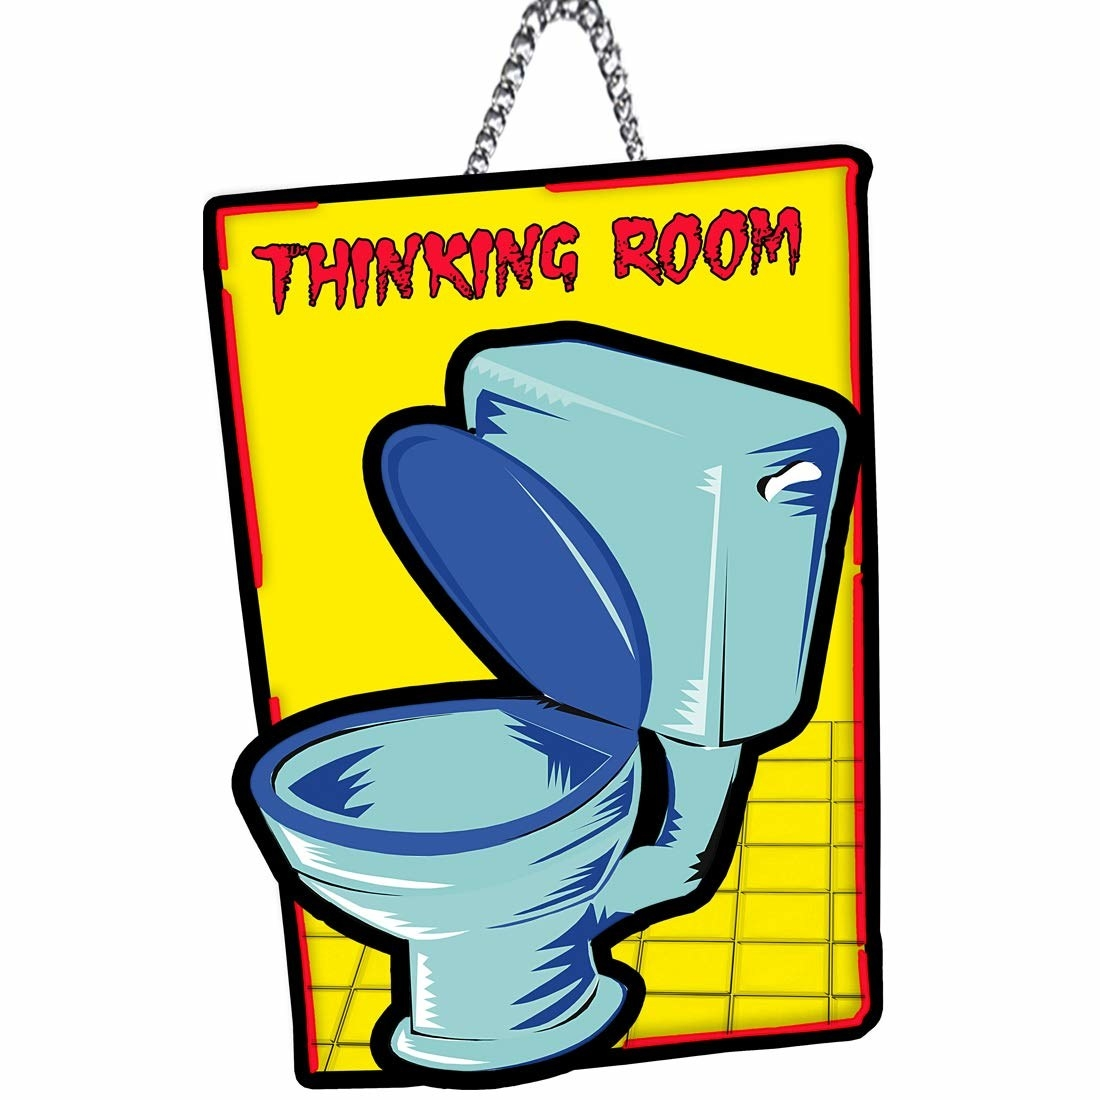 A pop art inspired bathroom poster with a toilet on it and text that read Thinking Room